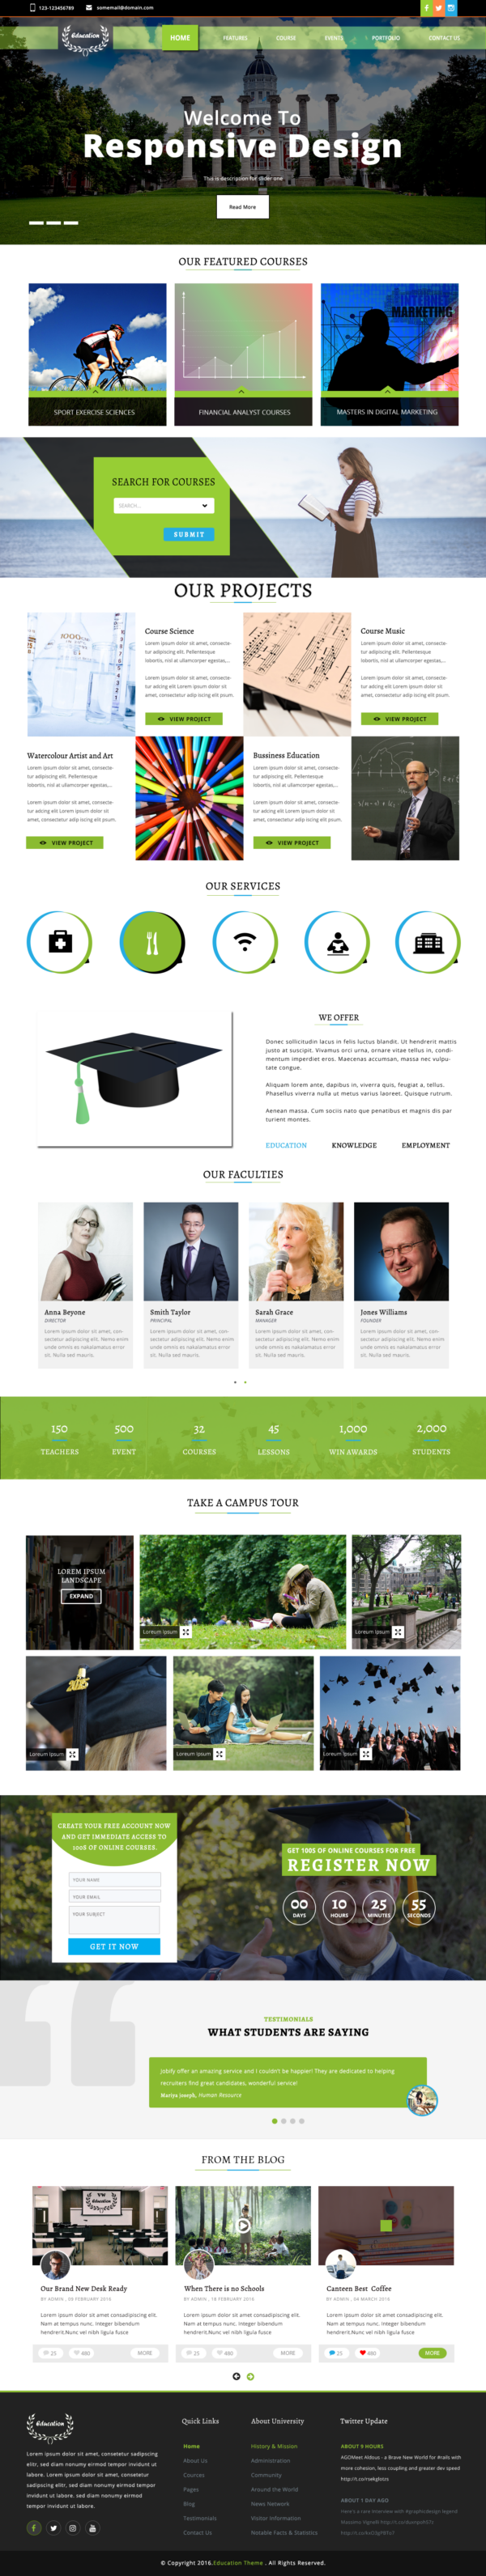 Education WordPress theme.